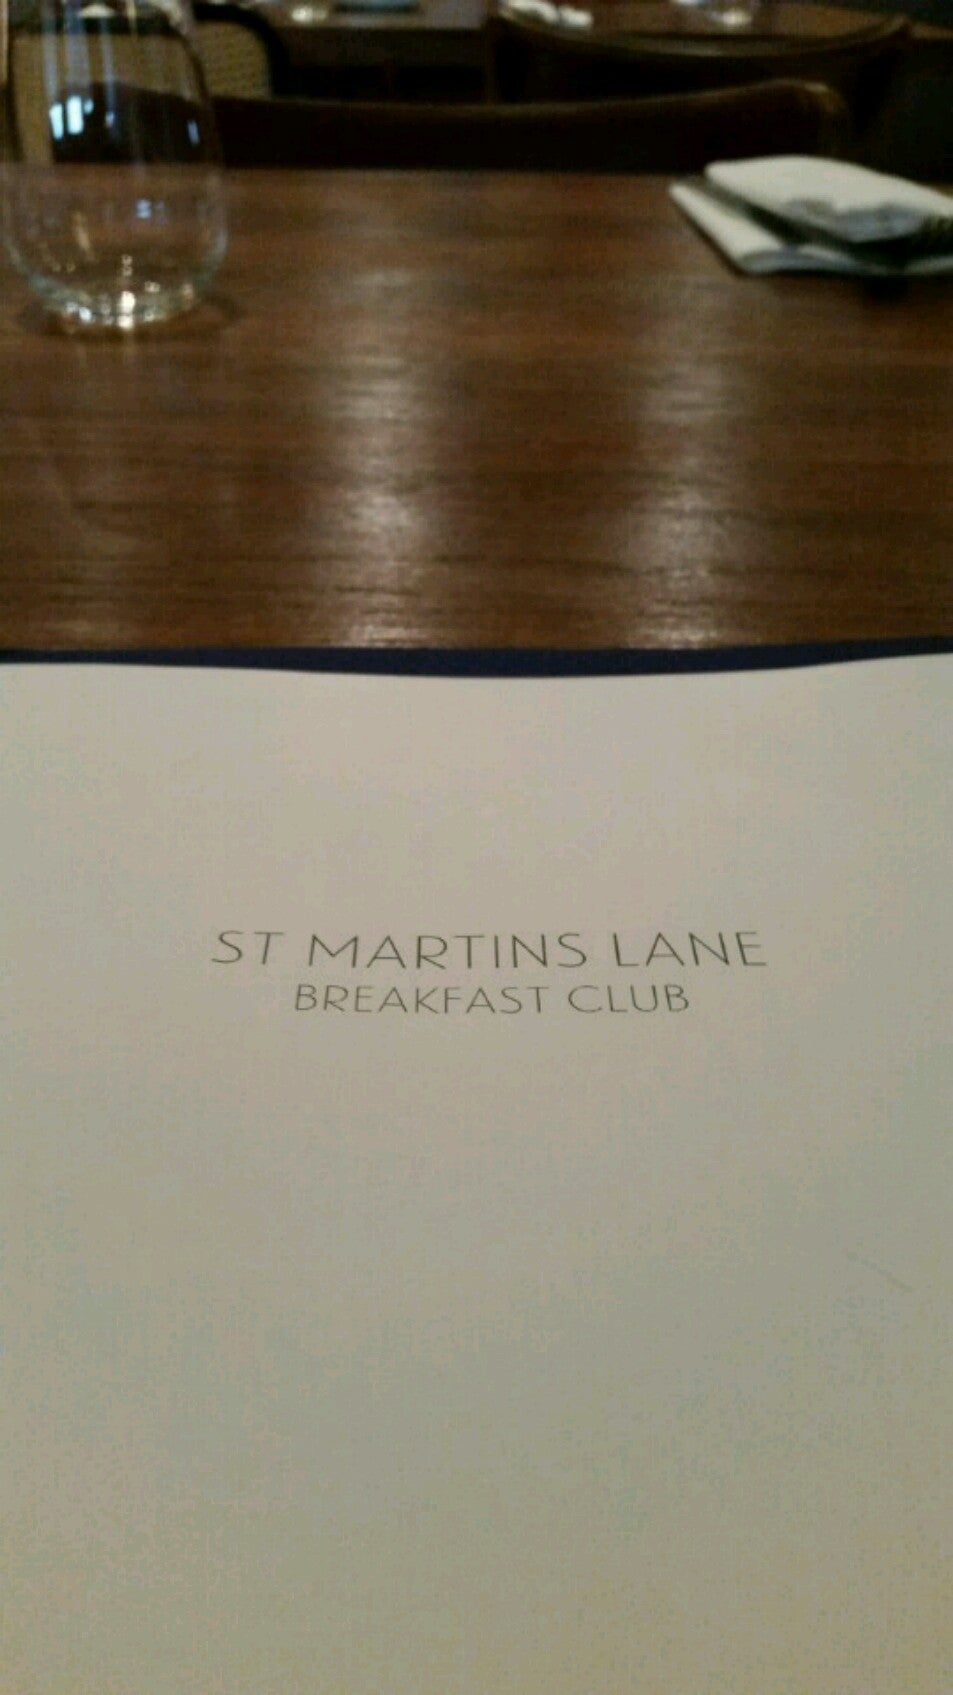 Photo of St Martins Lane